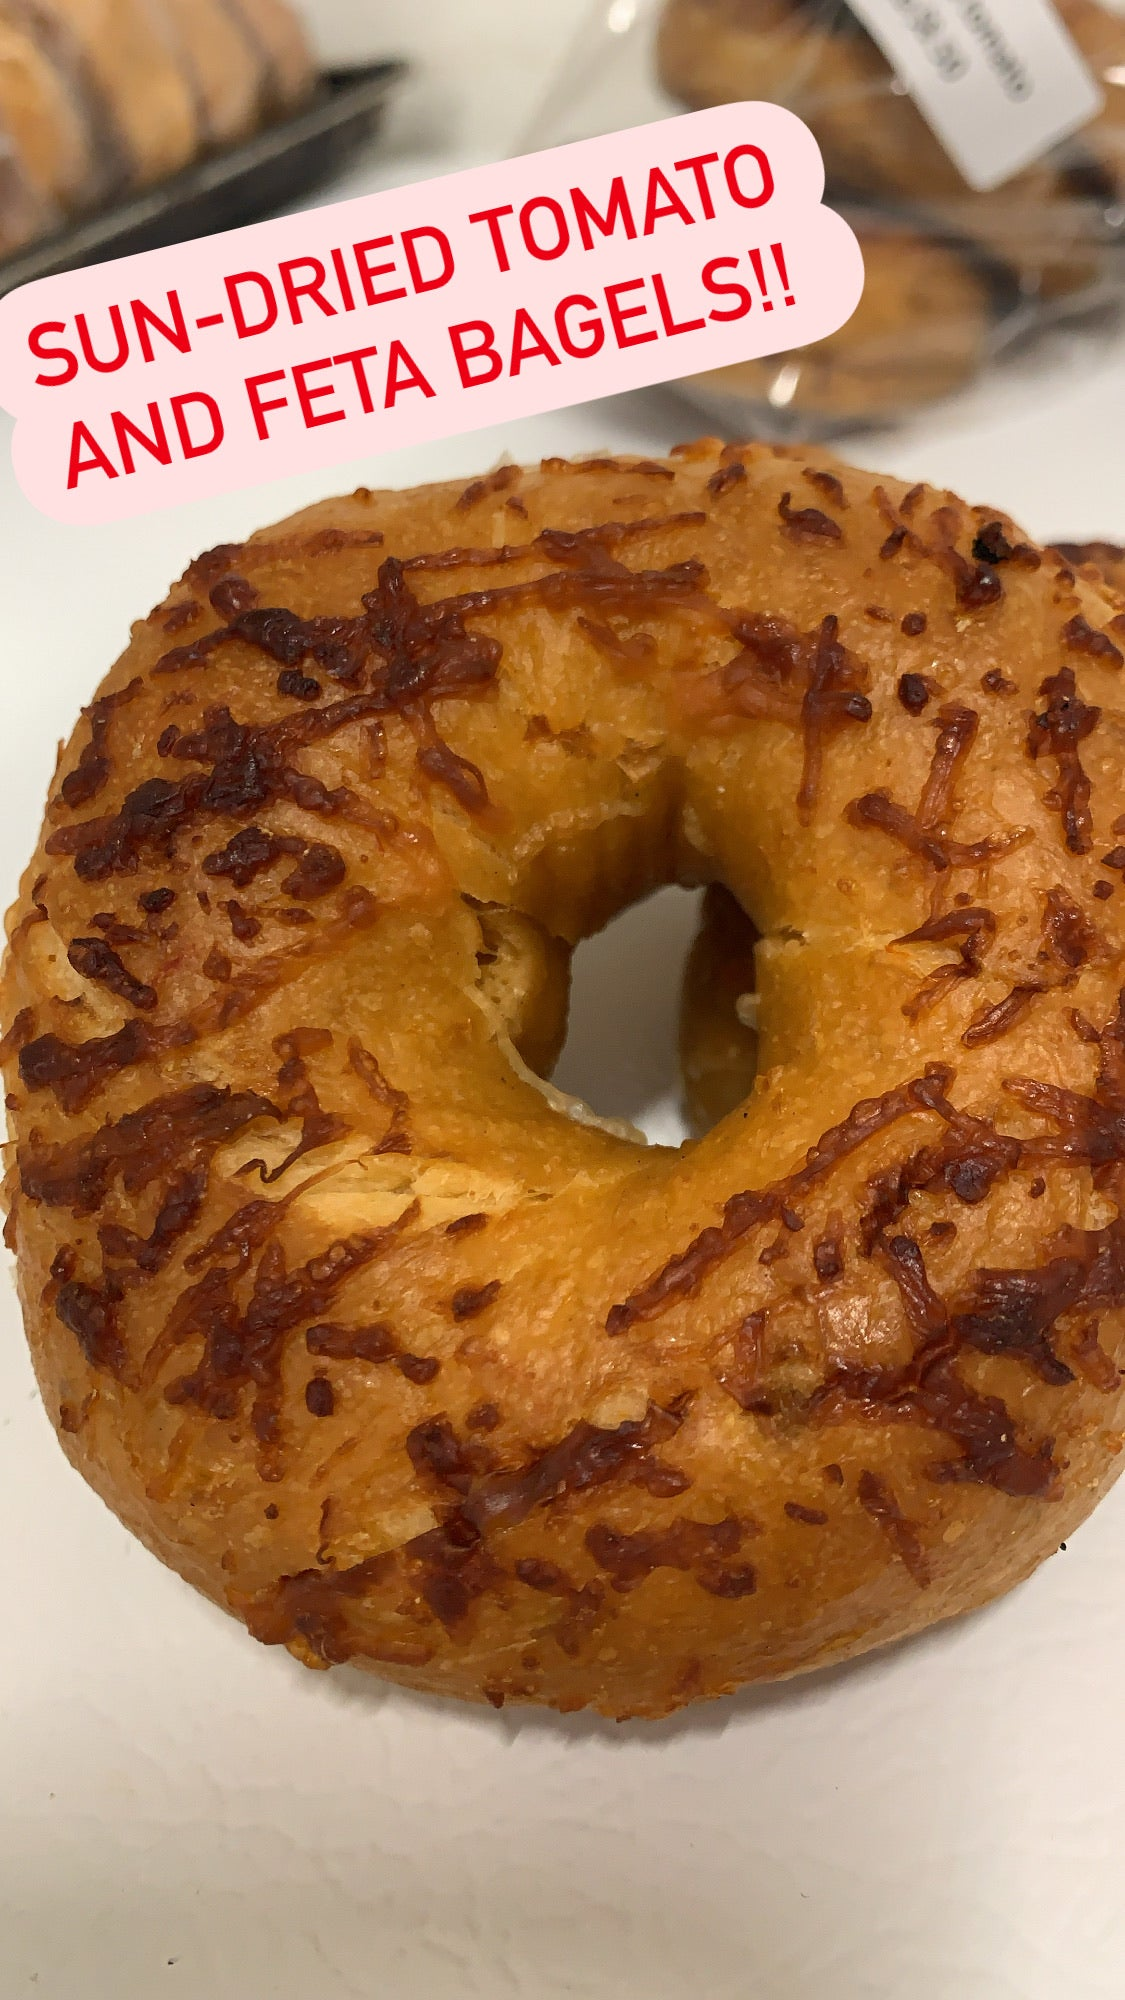 6pkg Sun-dried tomato feta bagel - available Thursday and Fridays